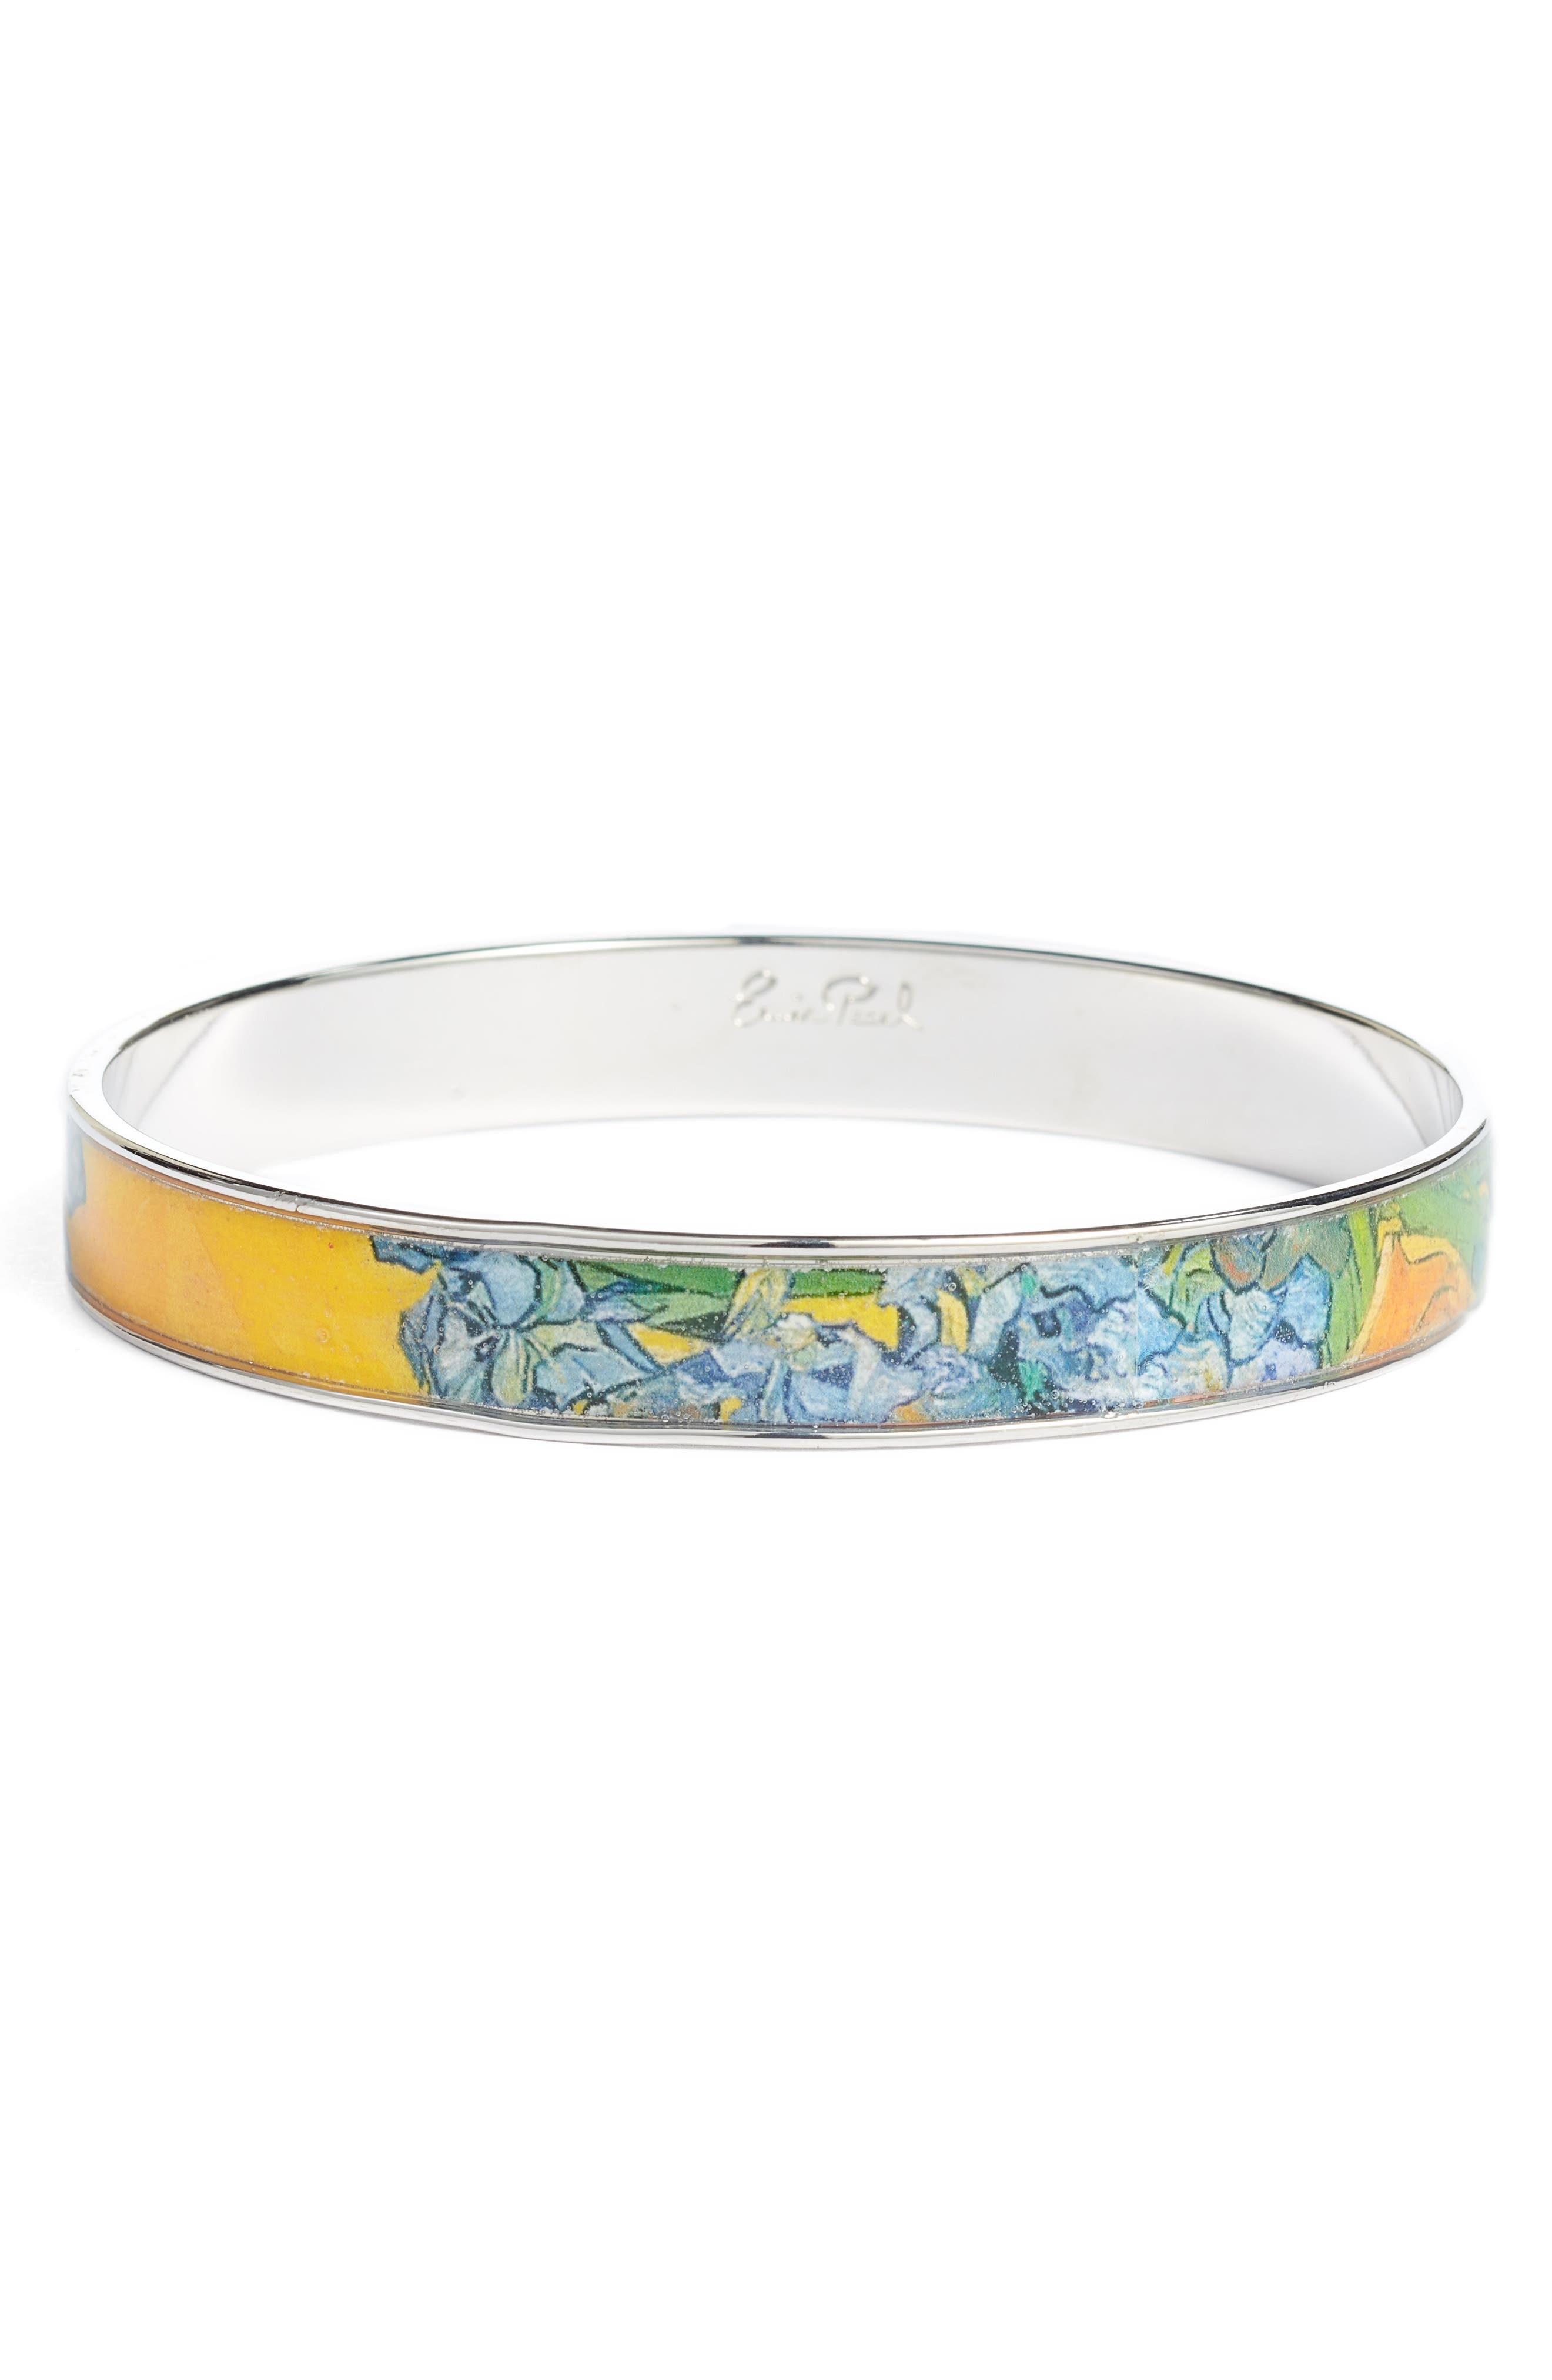 Irises Medium Bangle Bracelet,                             Main thumbnail 1, color,                             YELLOW/ SILVER